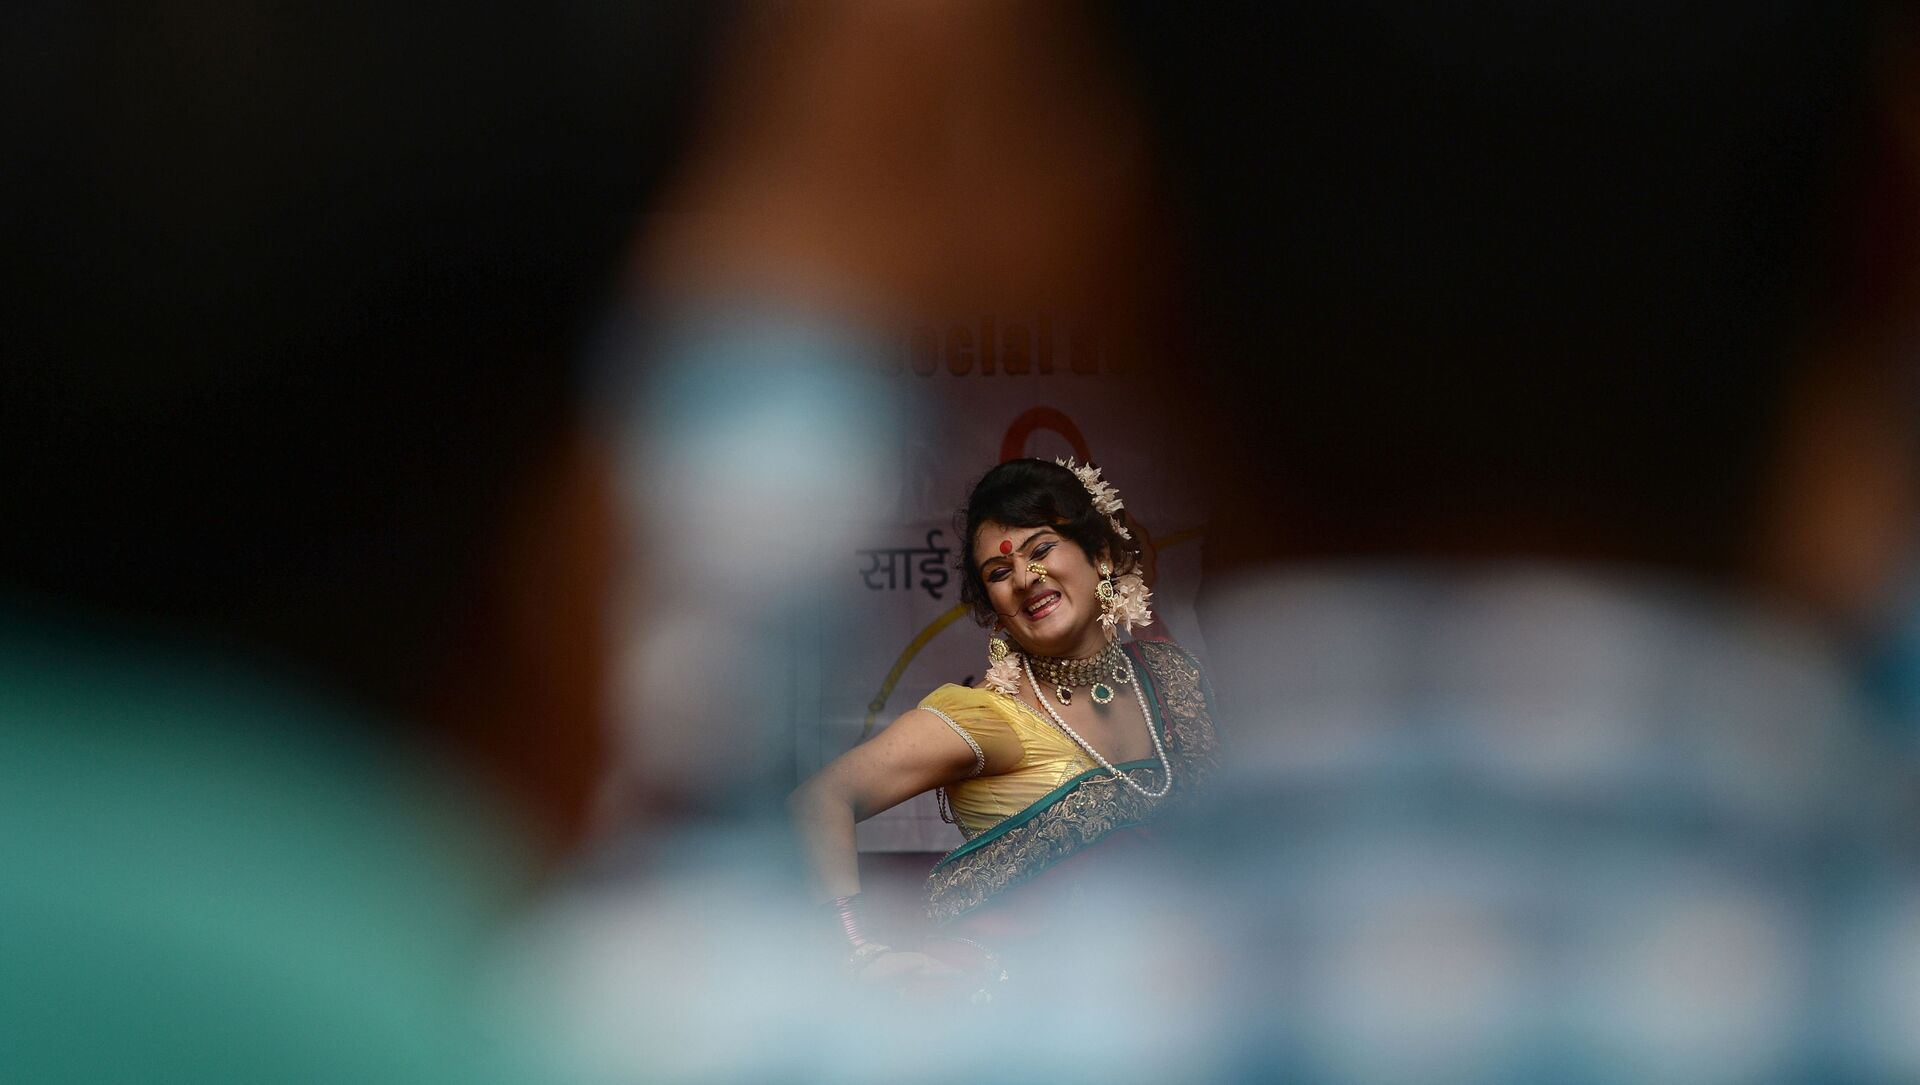 A  traditional Lavani folk dancer is seen through a gap among the audience during a performance for sex workers in the red light district of Kamathipura in Mumbai on 28 August 2015, ahead of the Hindu festival 'Raksha Bandhan' - Sputnik International, 1920, 15.03.2021